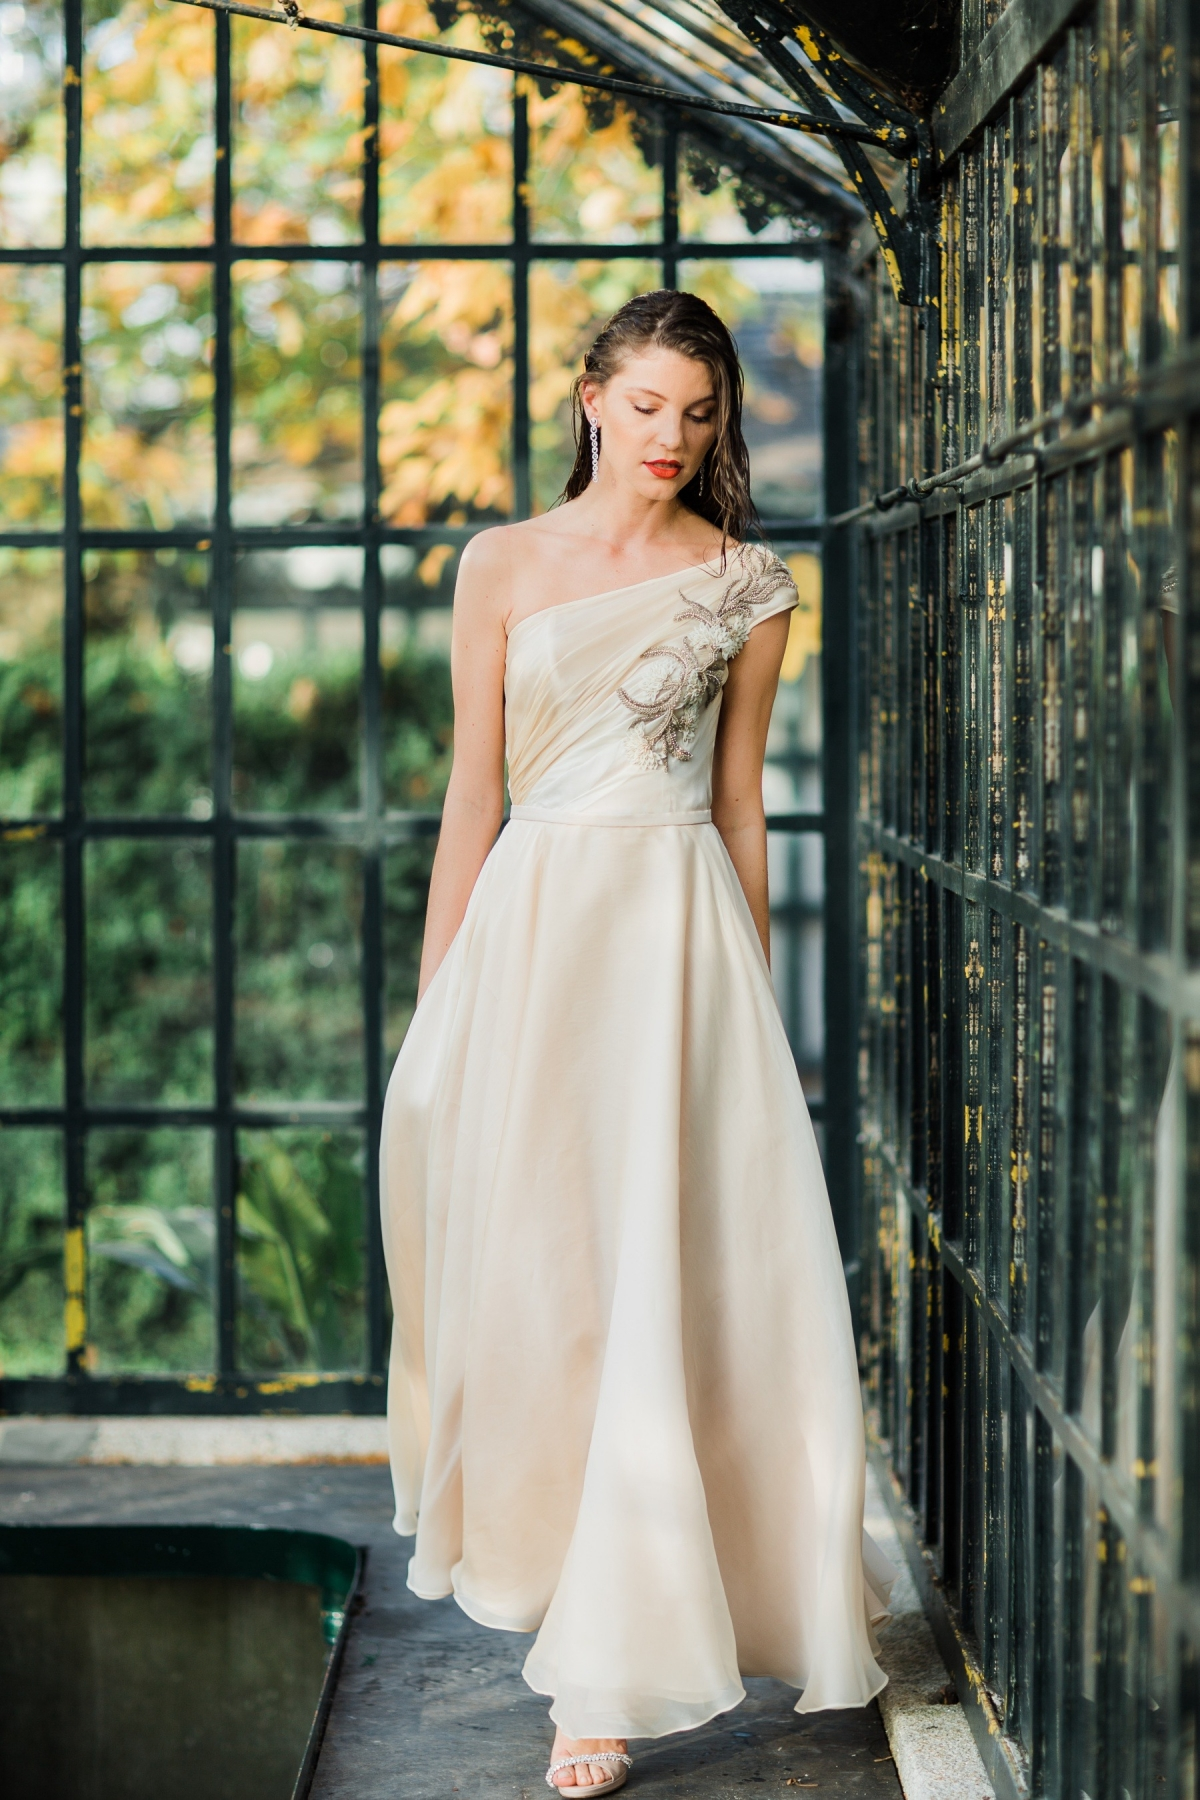 Gio Rodrigues Bridal Spring 2019 Paris